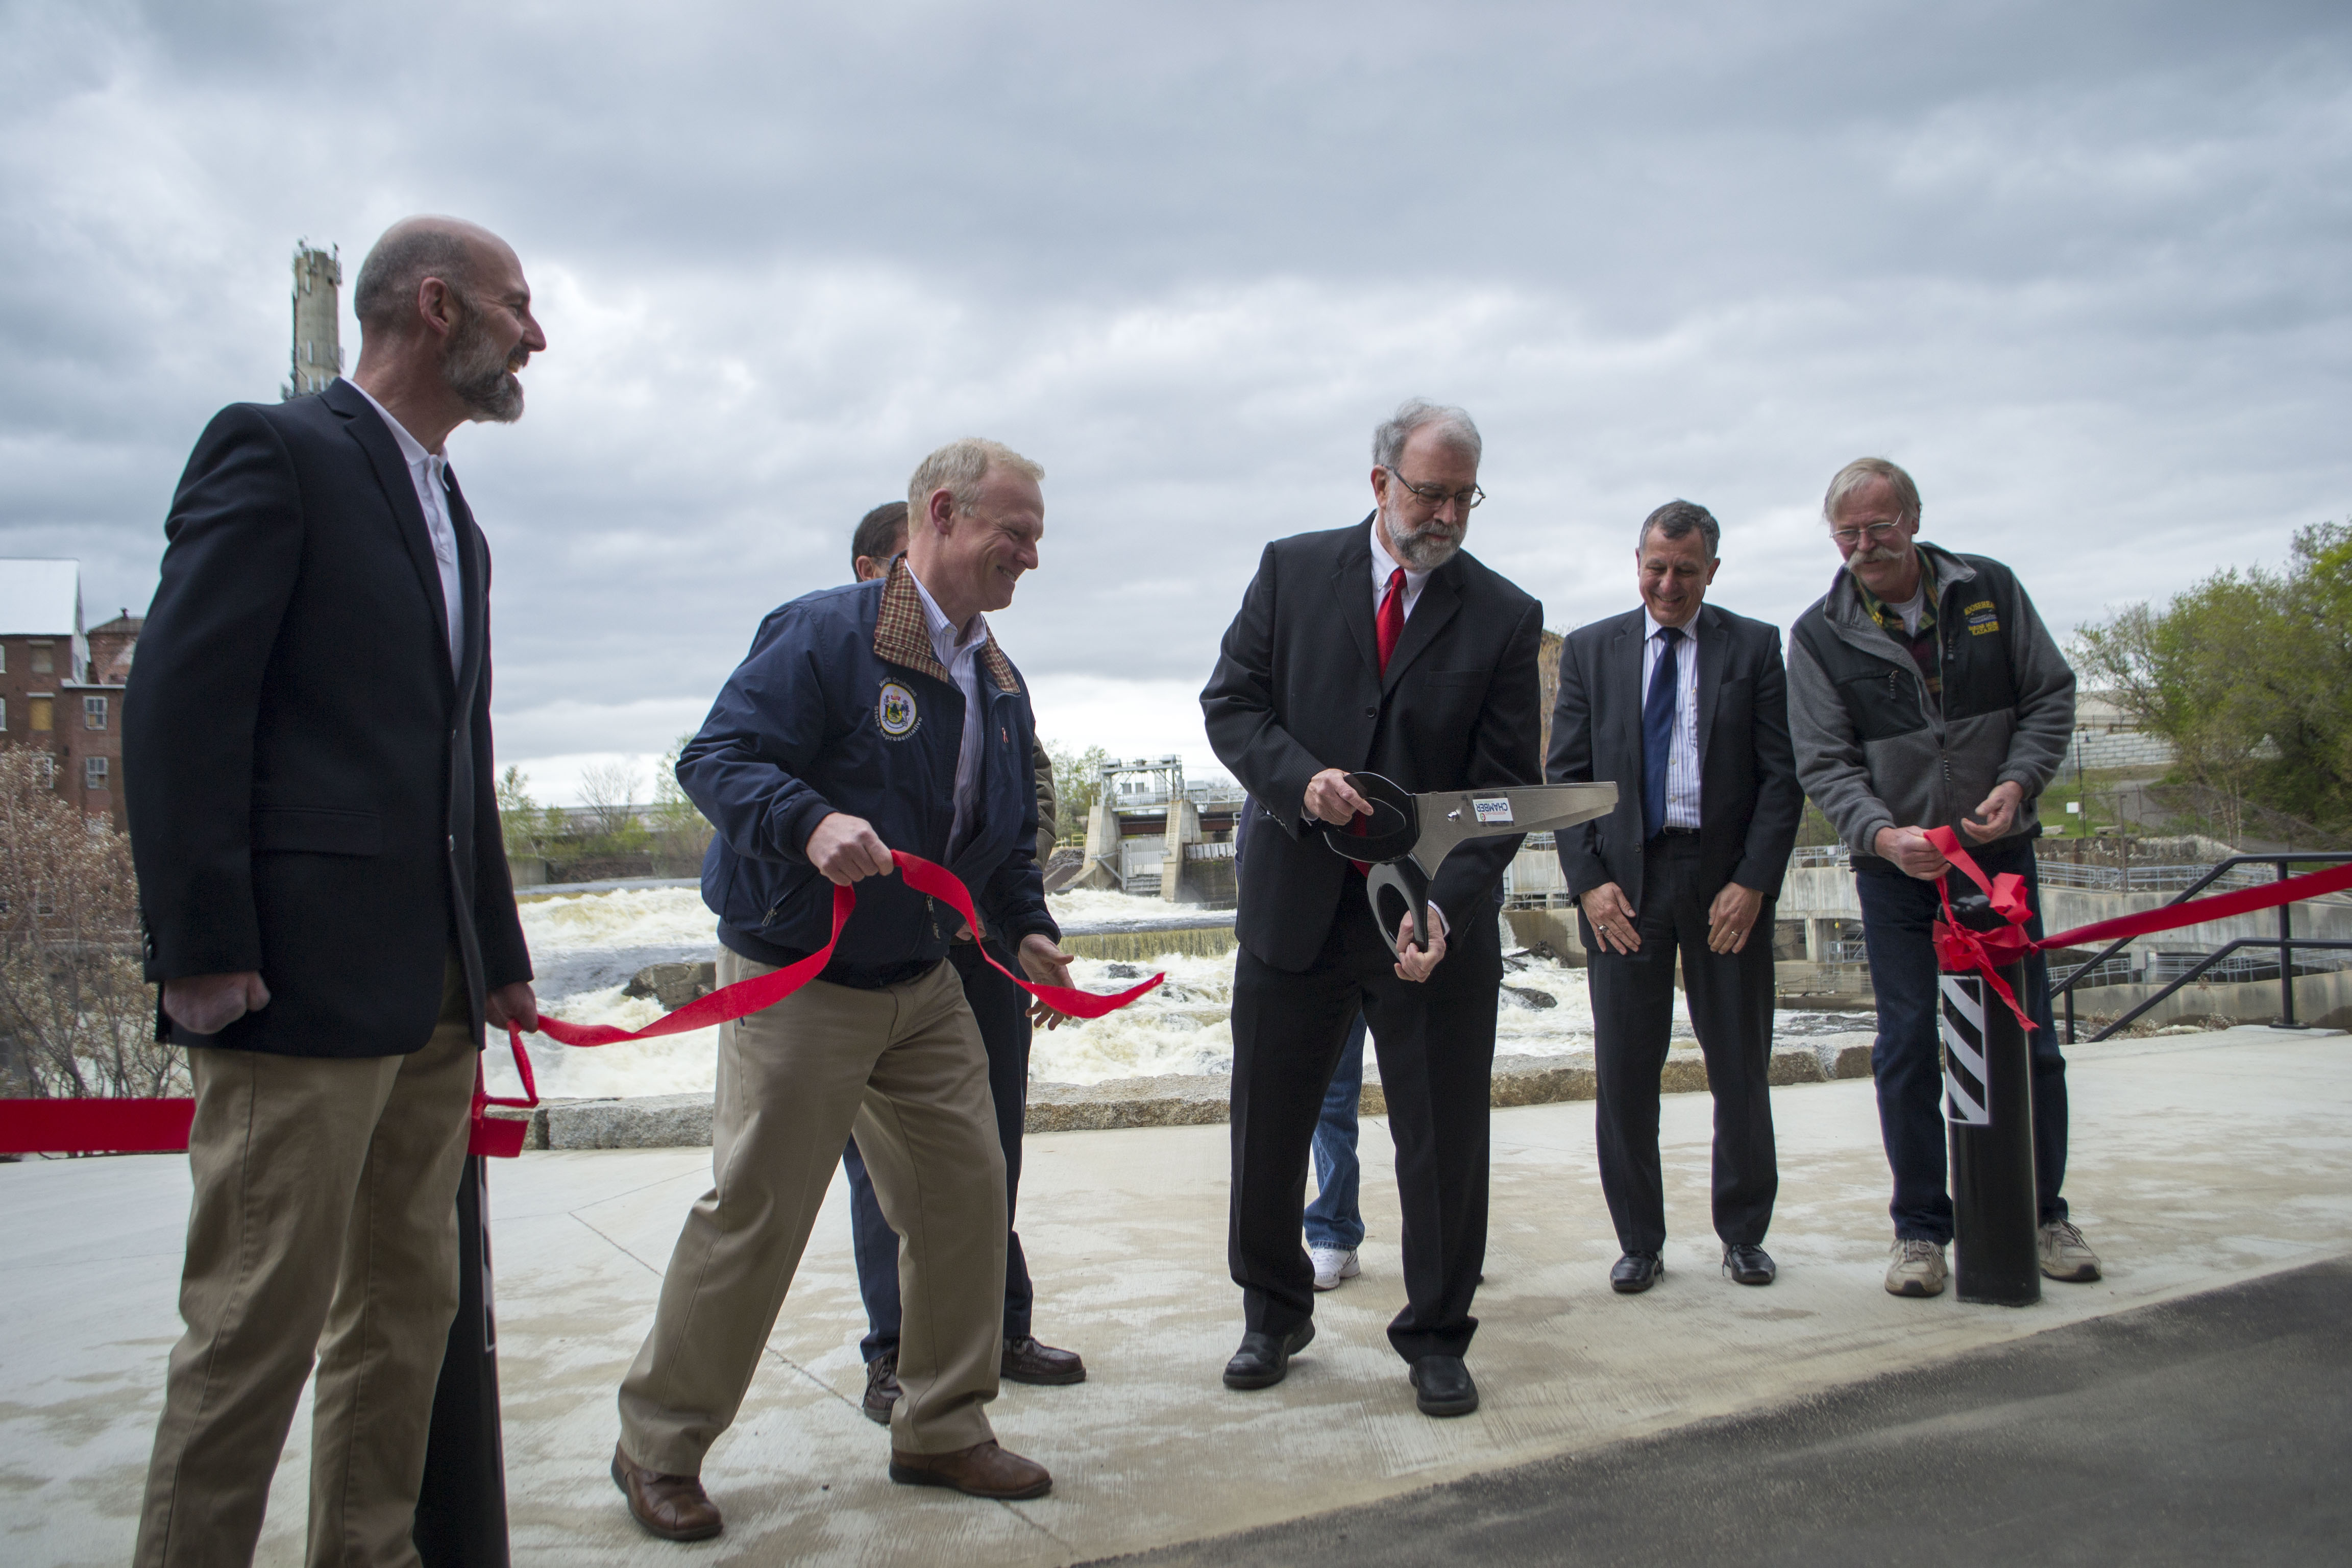 Biddeford Mayor Alan Casavant, center, and other city and state officials cut the ribbon on the new Laconia Plaza, located along the city's RiverWalk on Thursday. From left: Brad Favreau, Marin Grohman, Casavant, Norman Belanger and Michael Swanton. ALAN BENNETT/Journal Tribune